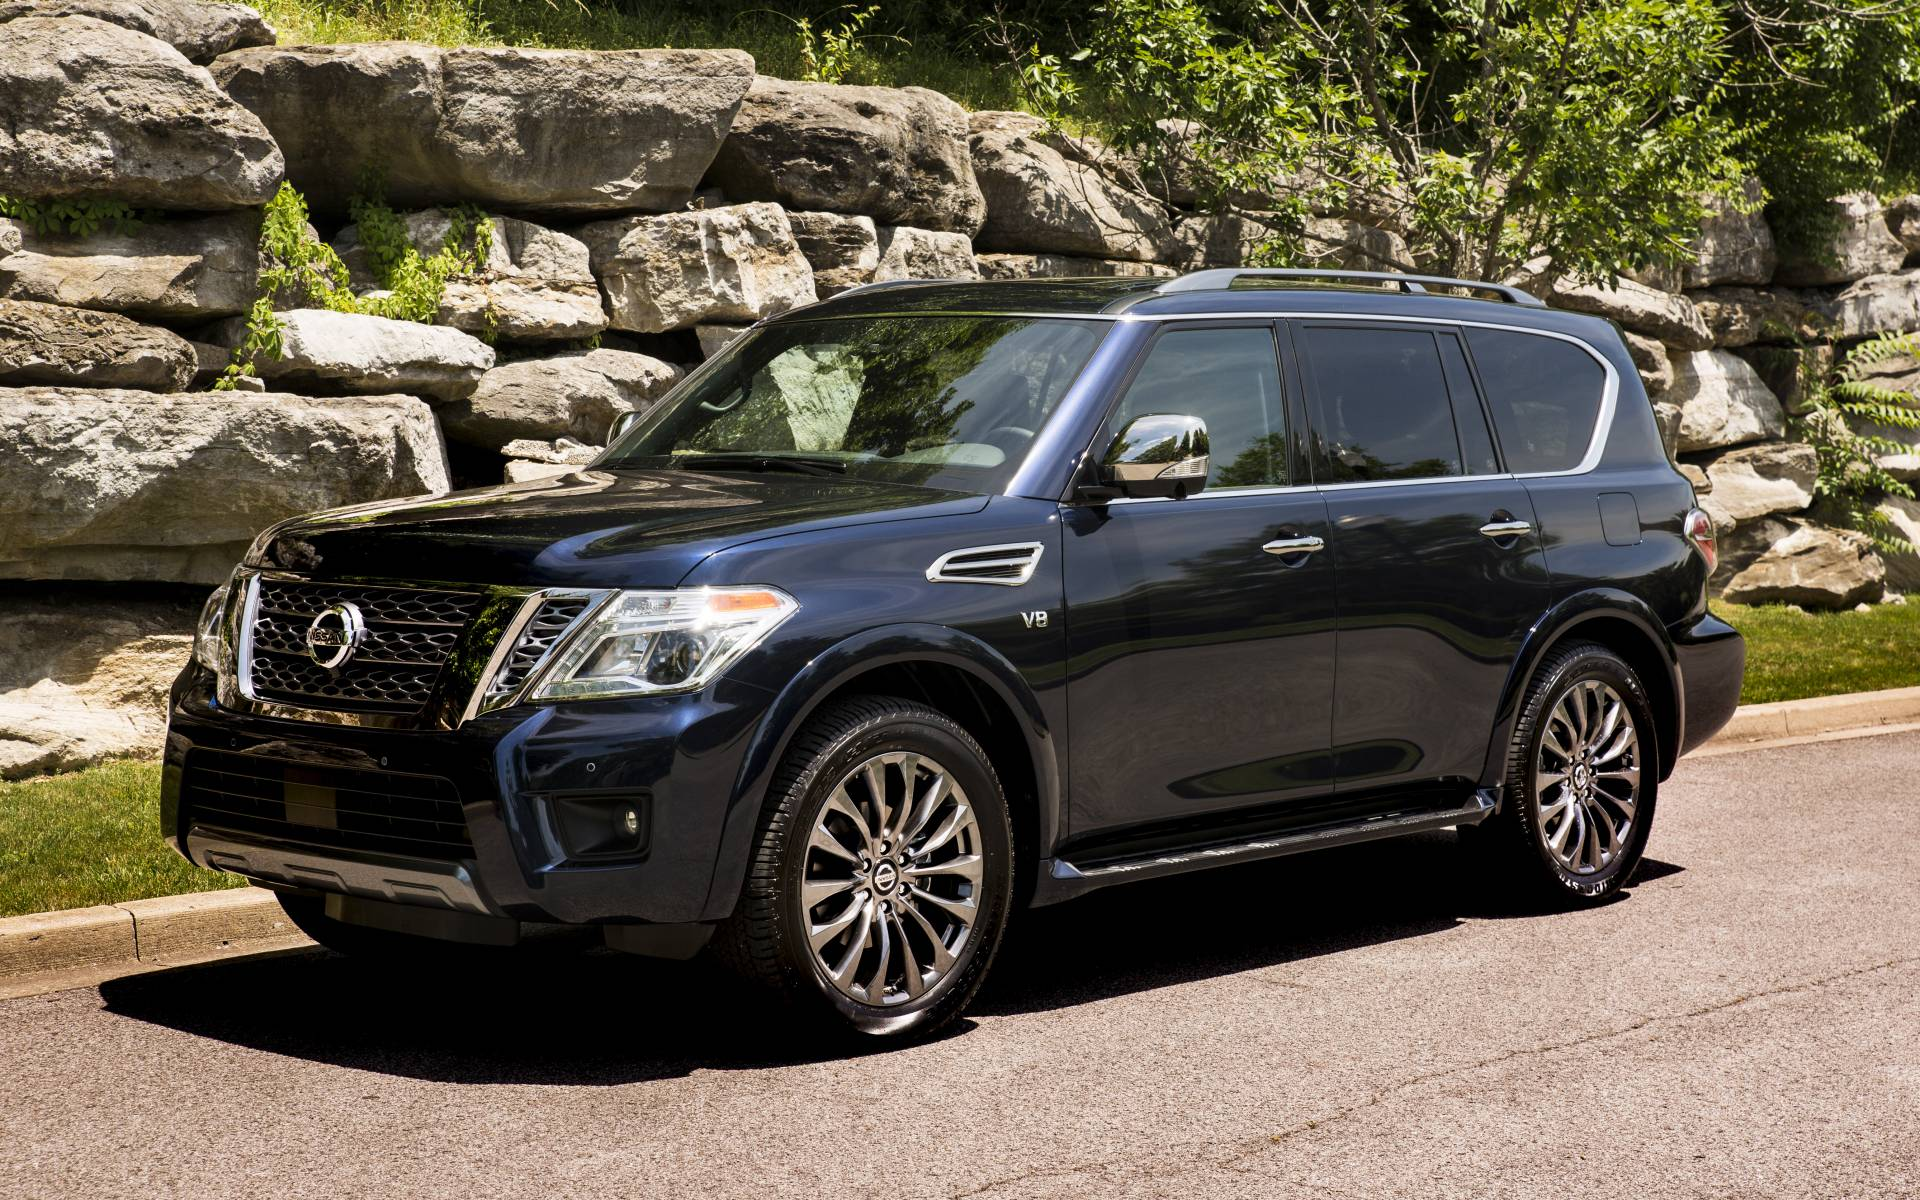 2020 Nissan Armada News Reviews Picture Galleries And Videos The Car Guide